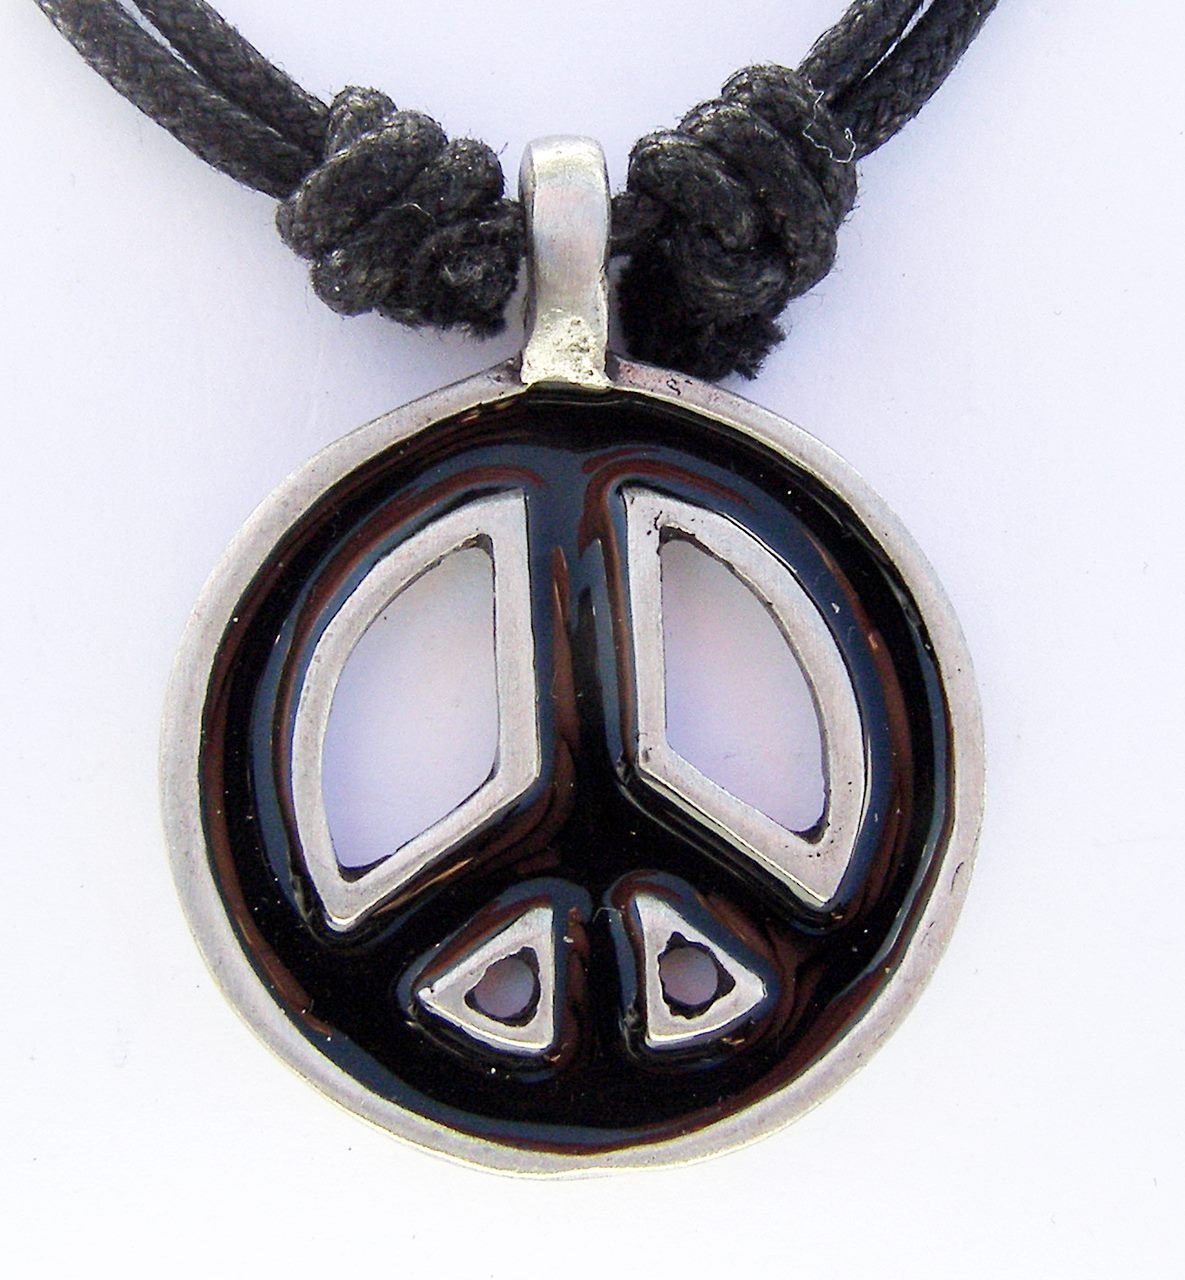 Cornwall Art Prints Peace Sign CND Pendant pewter on cord necklace Black Enamel 3.5cm